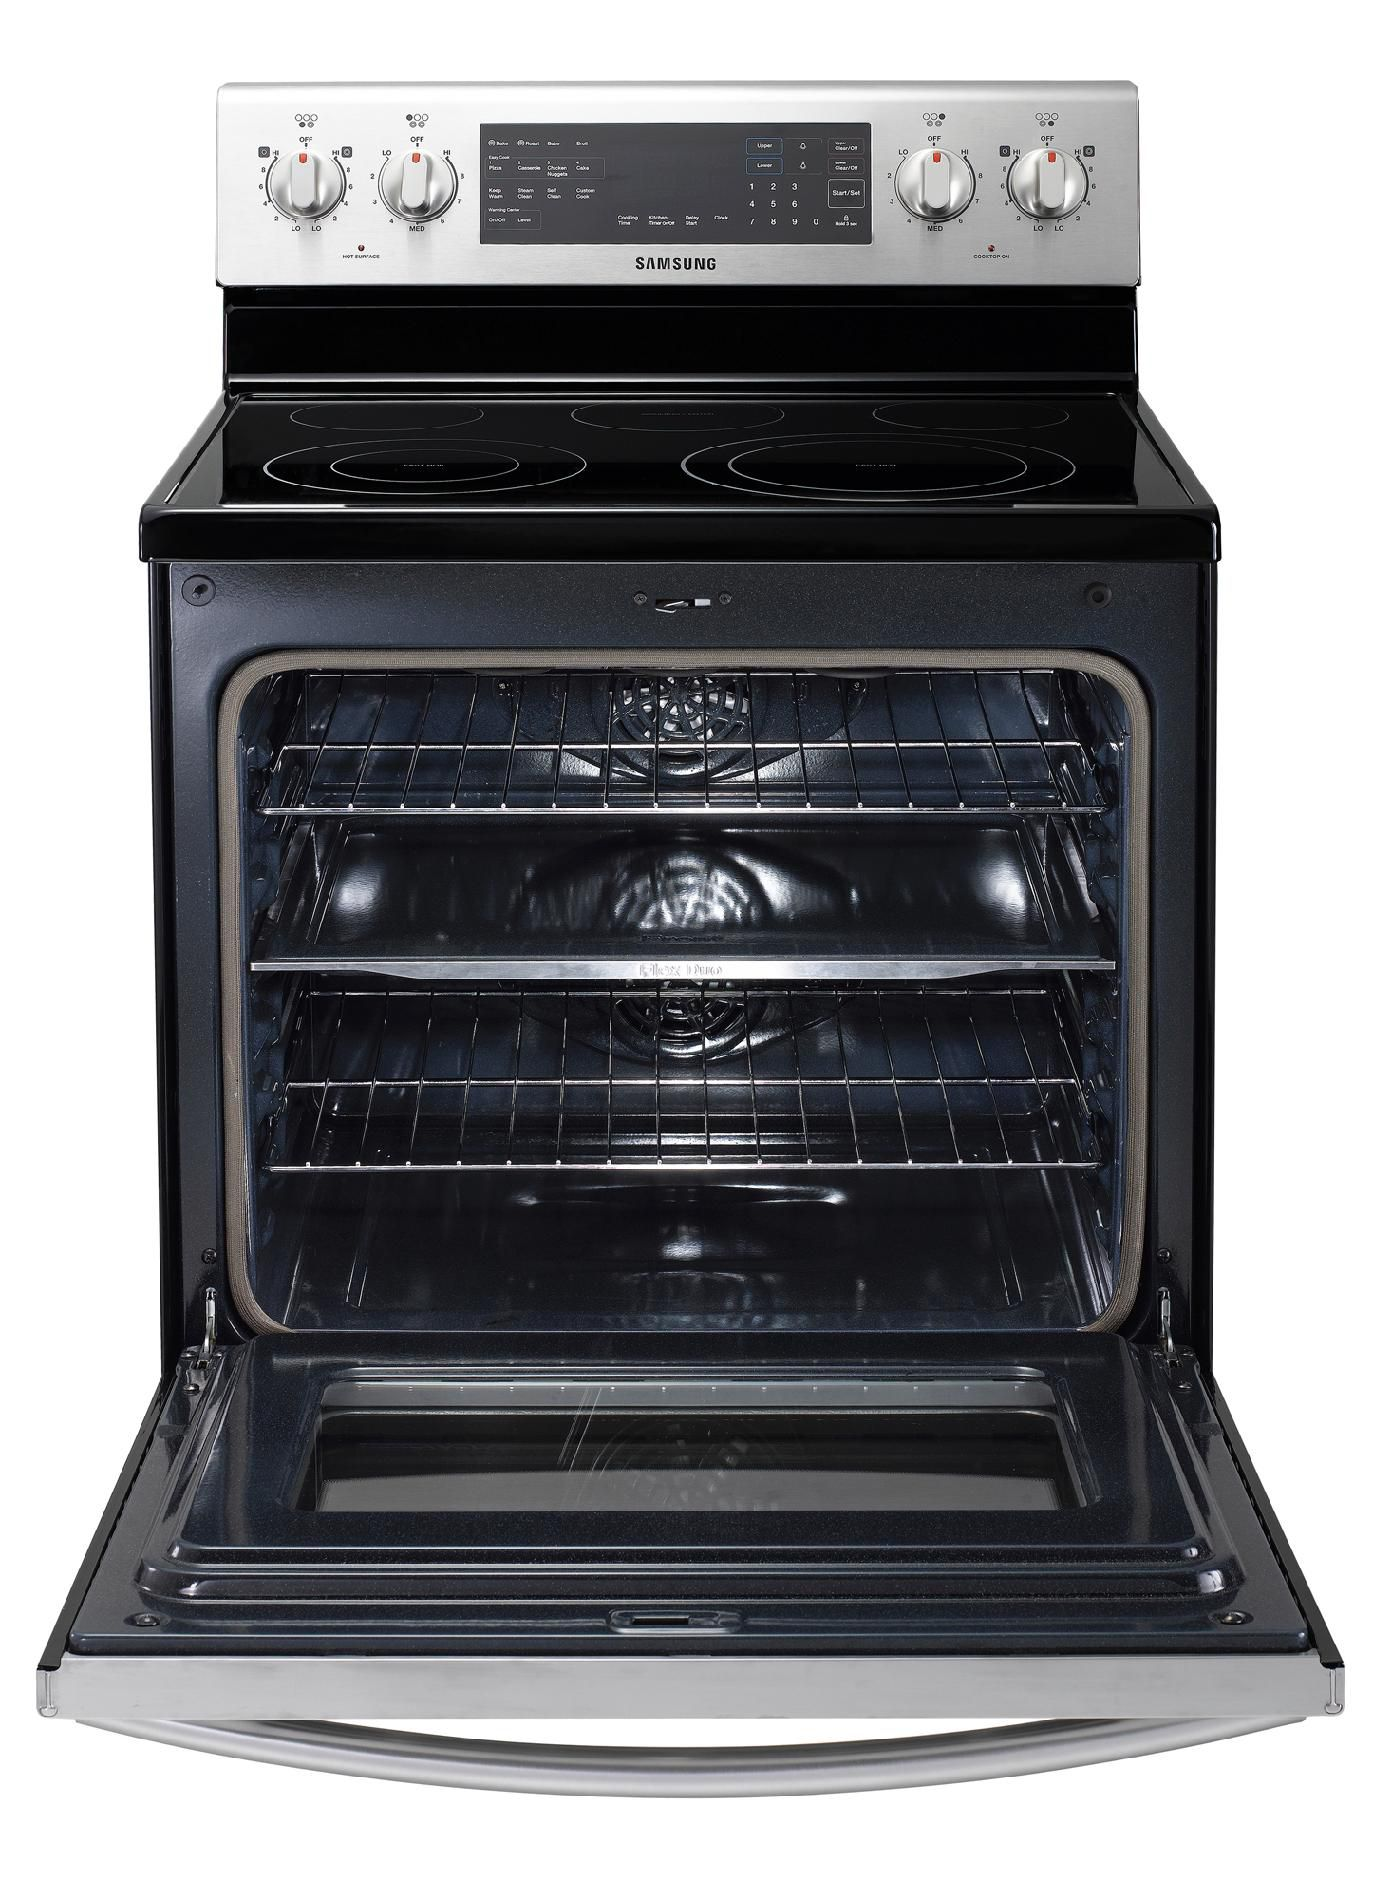 Samsung 5.9 cu. ft. Electric Range - Stainless Steel